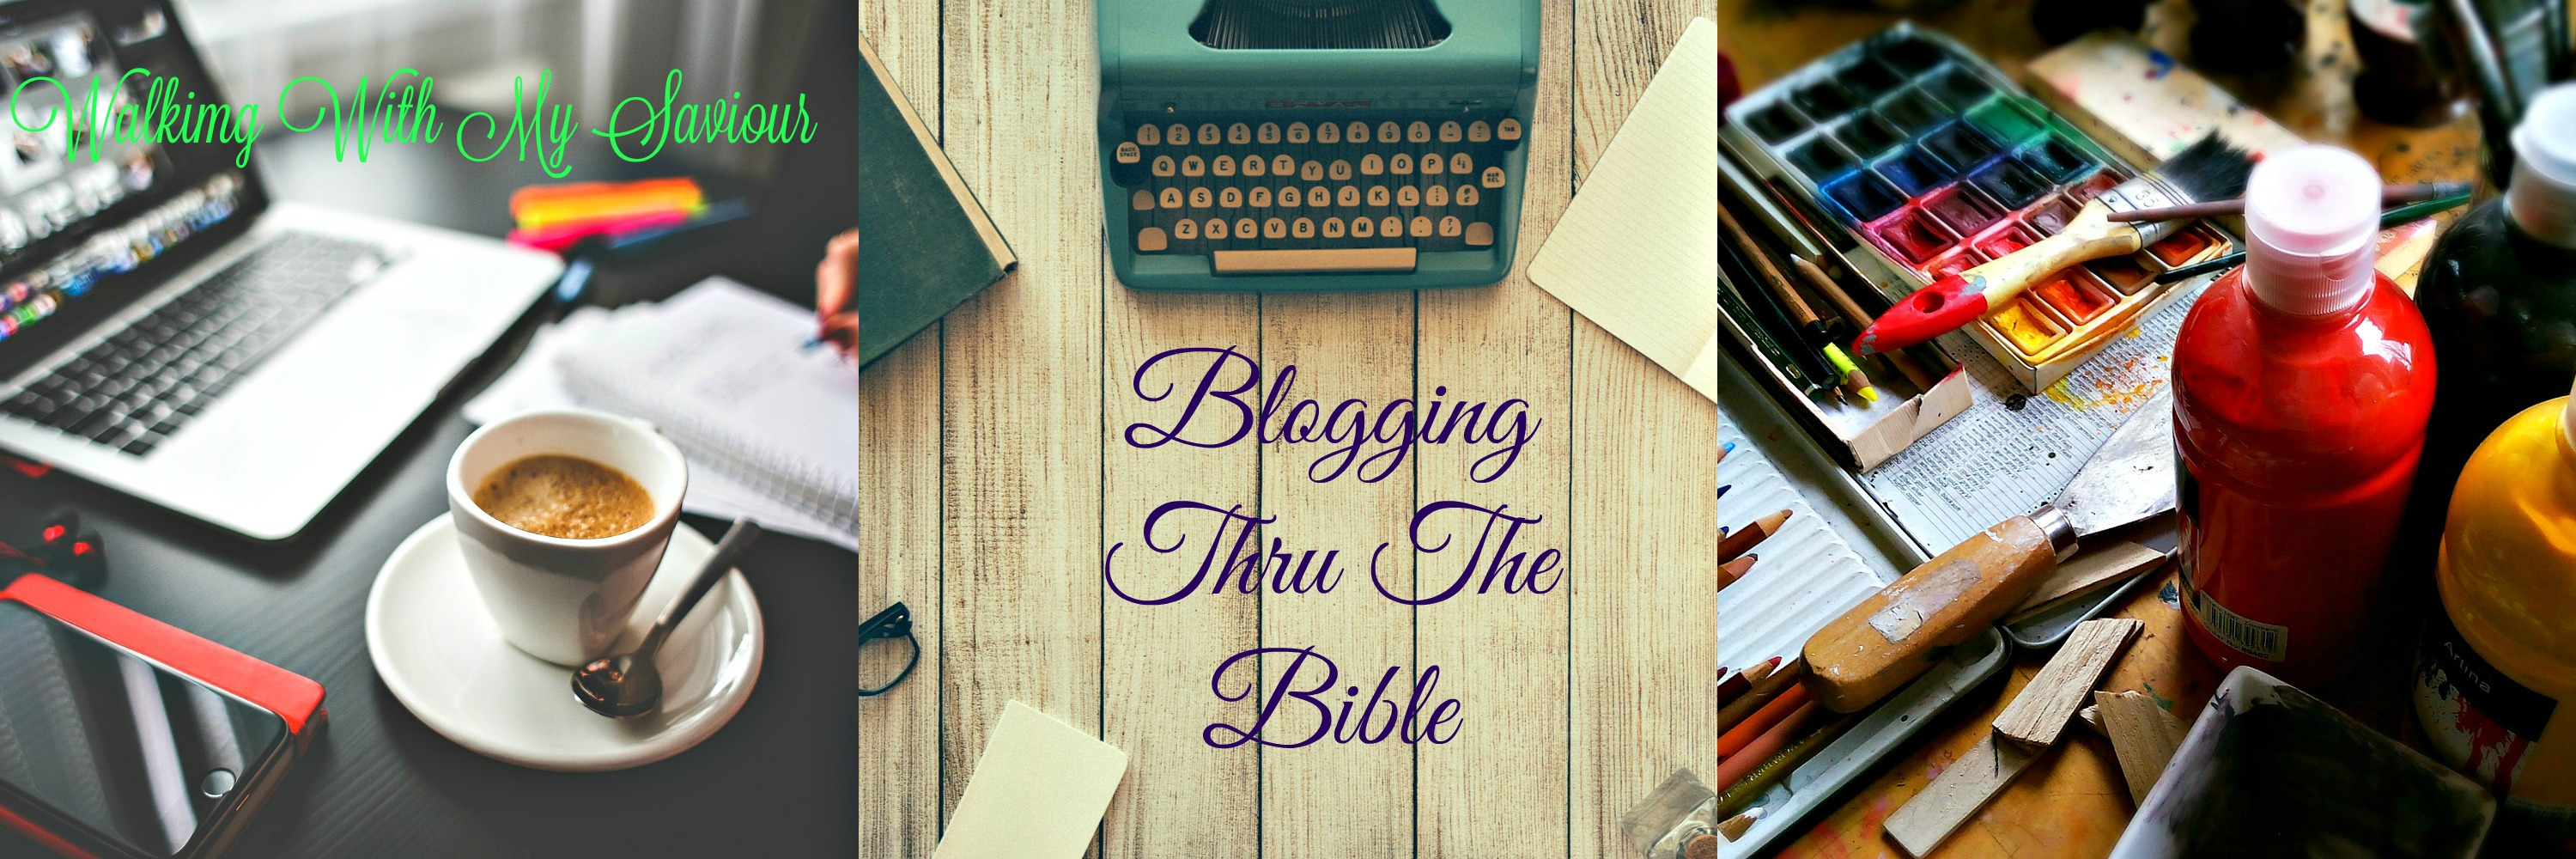 BLOGGING THRU THE BIBLE: GMG Resources for the Book of 2 Samuel